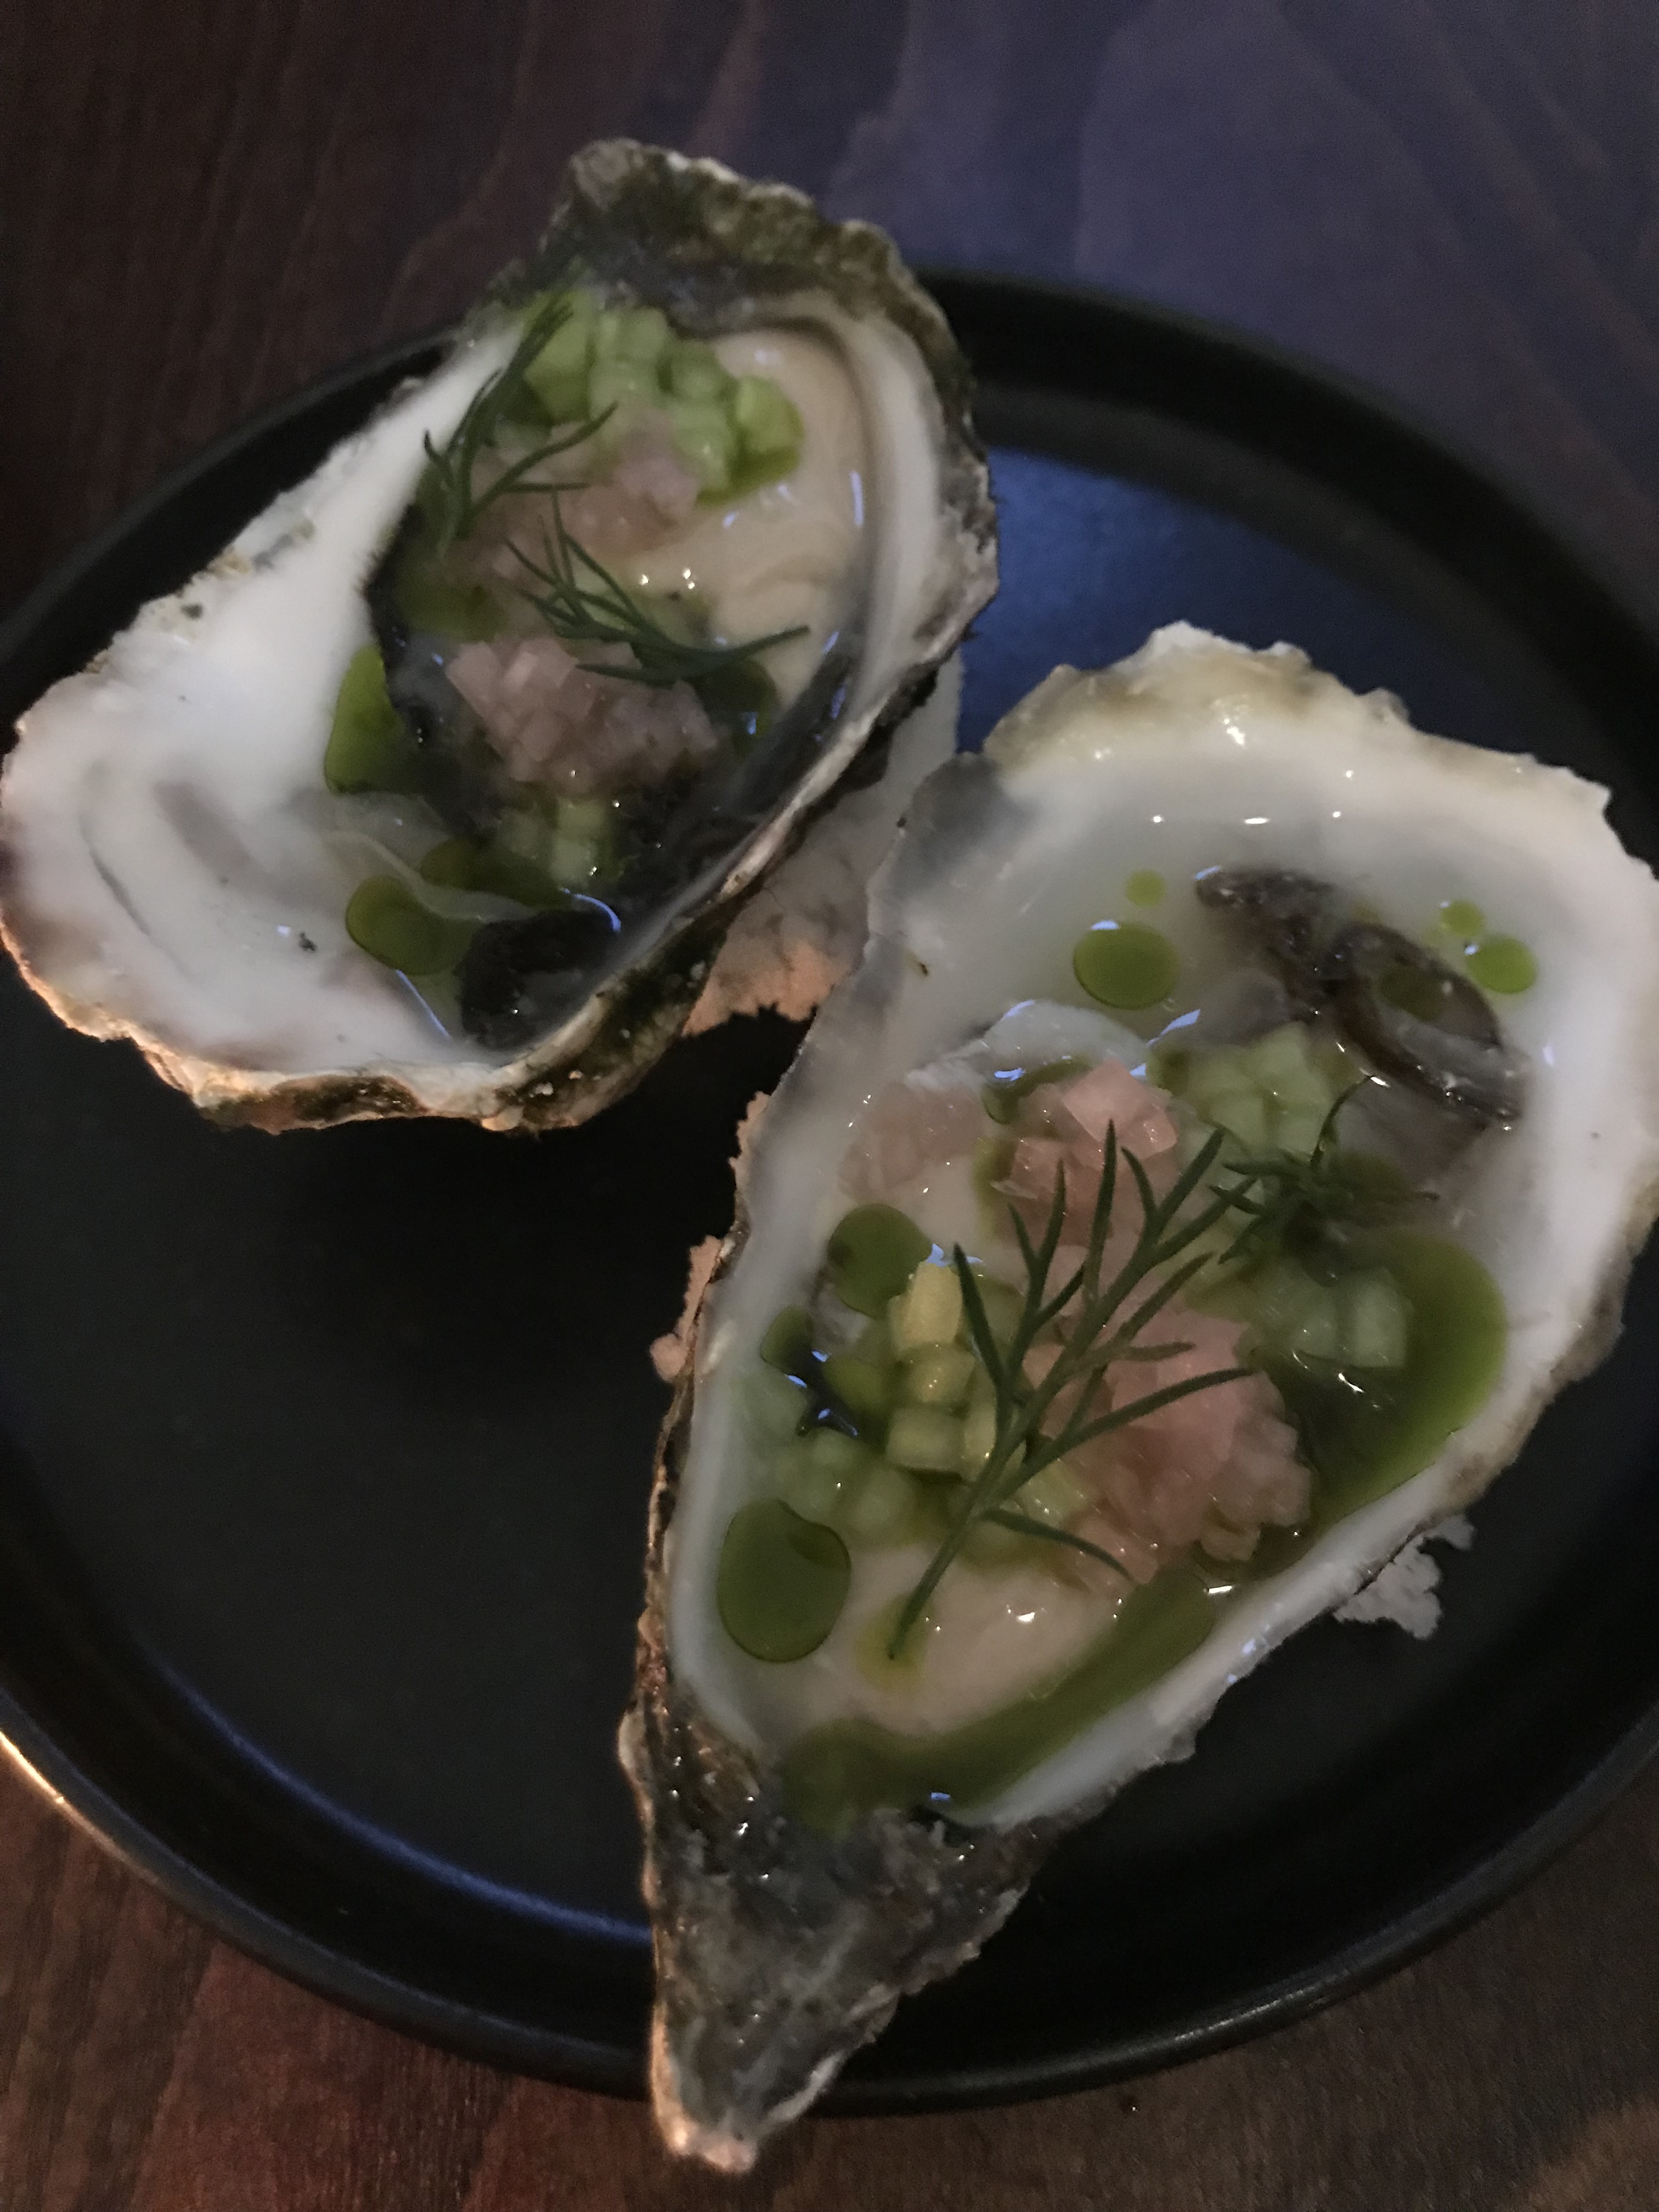 Open face oyster with dill, herbs, and dressing